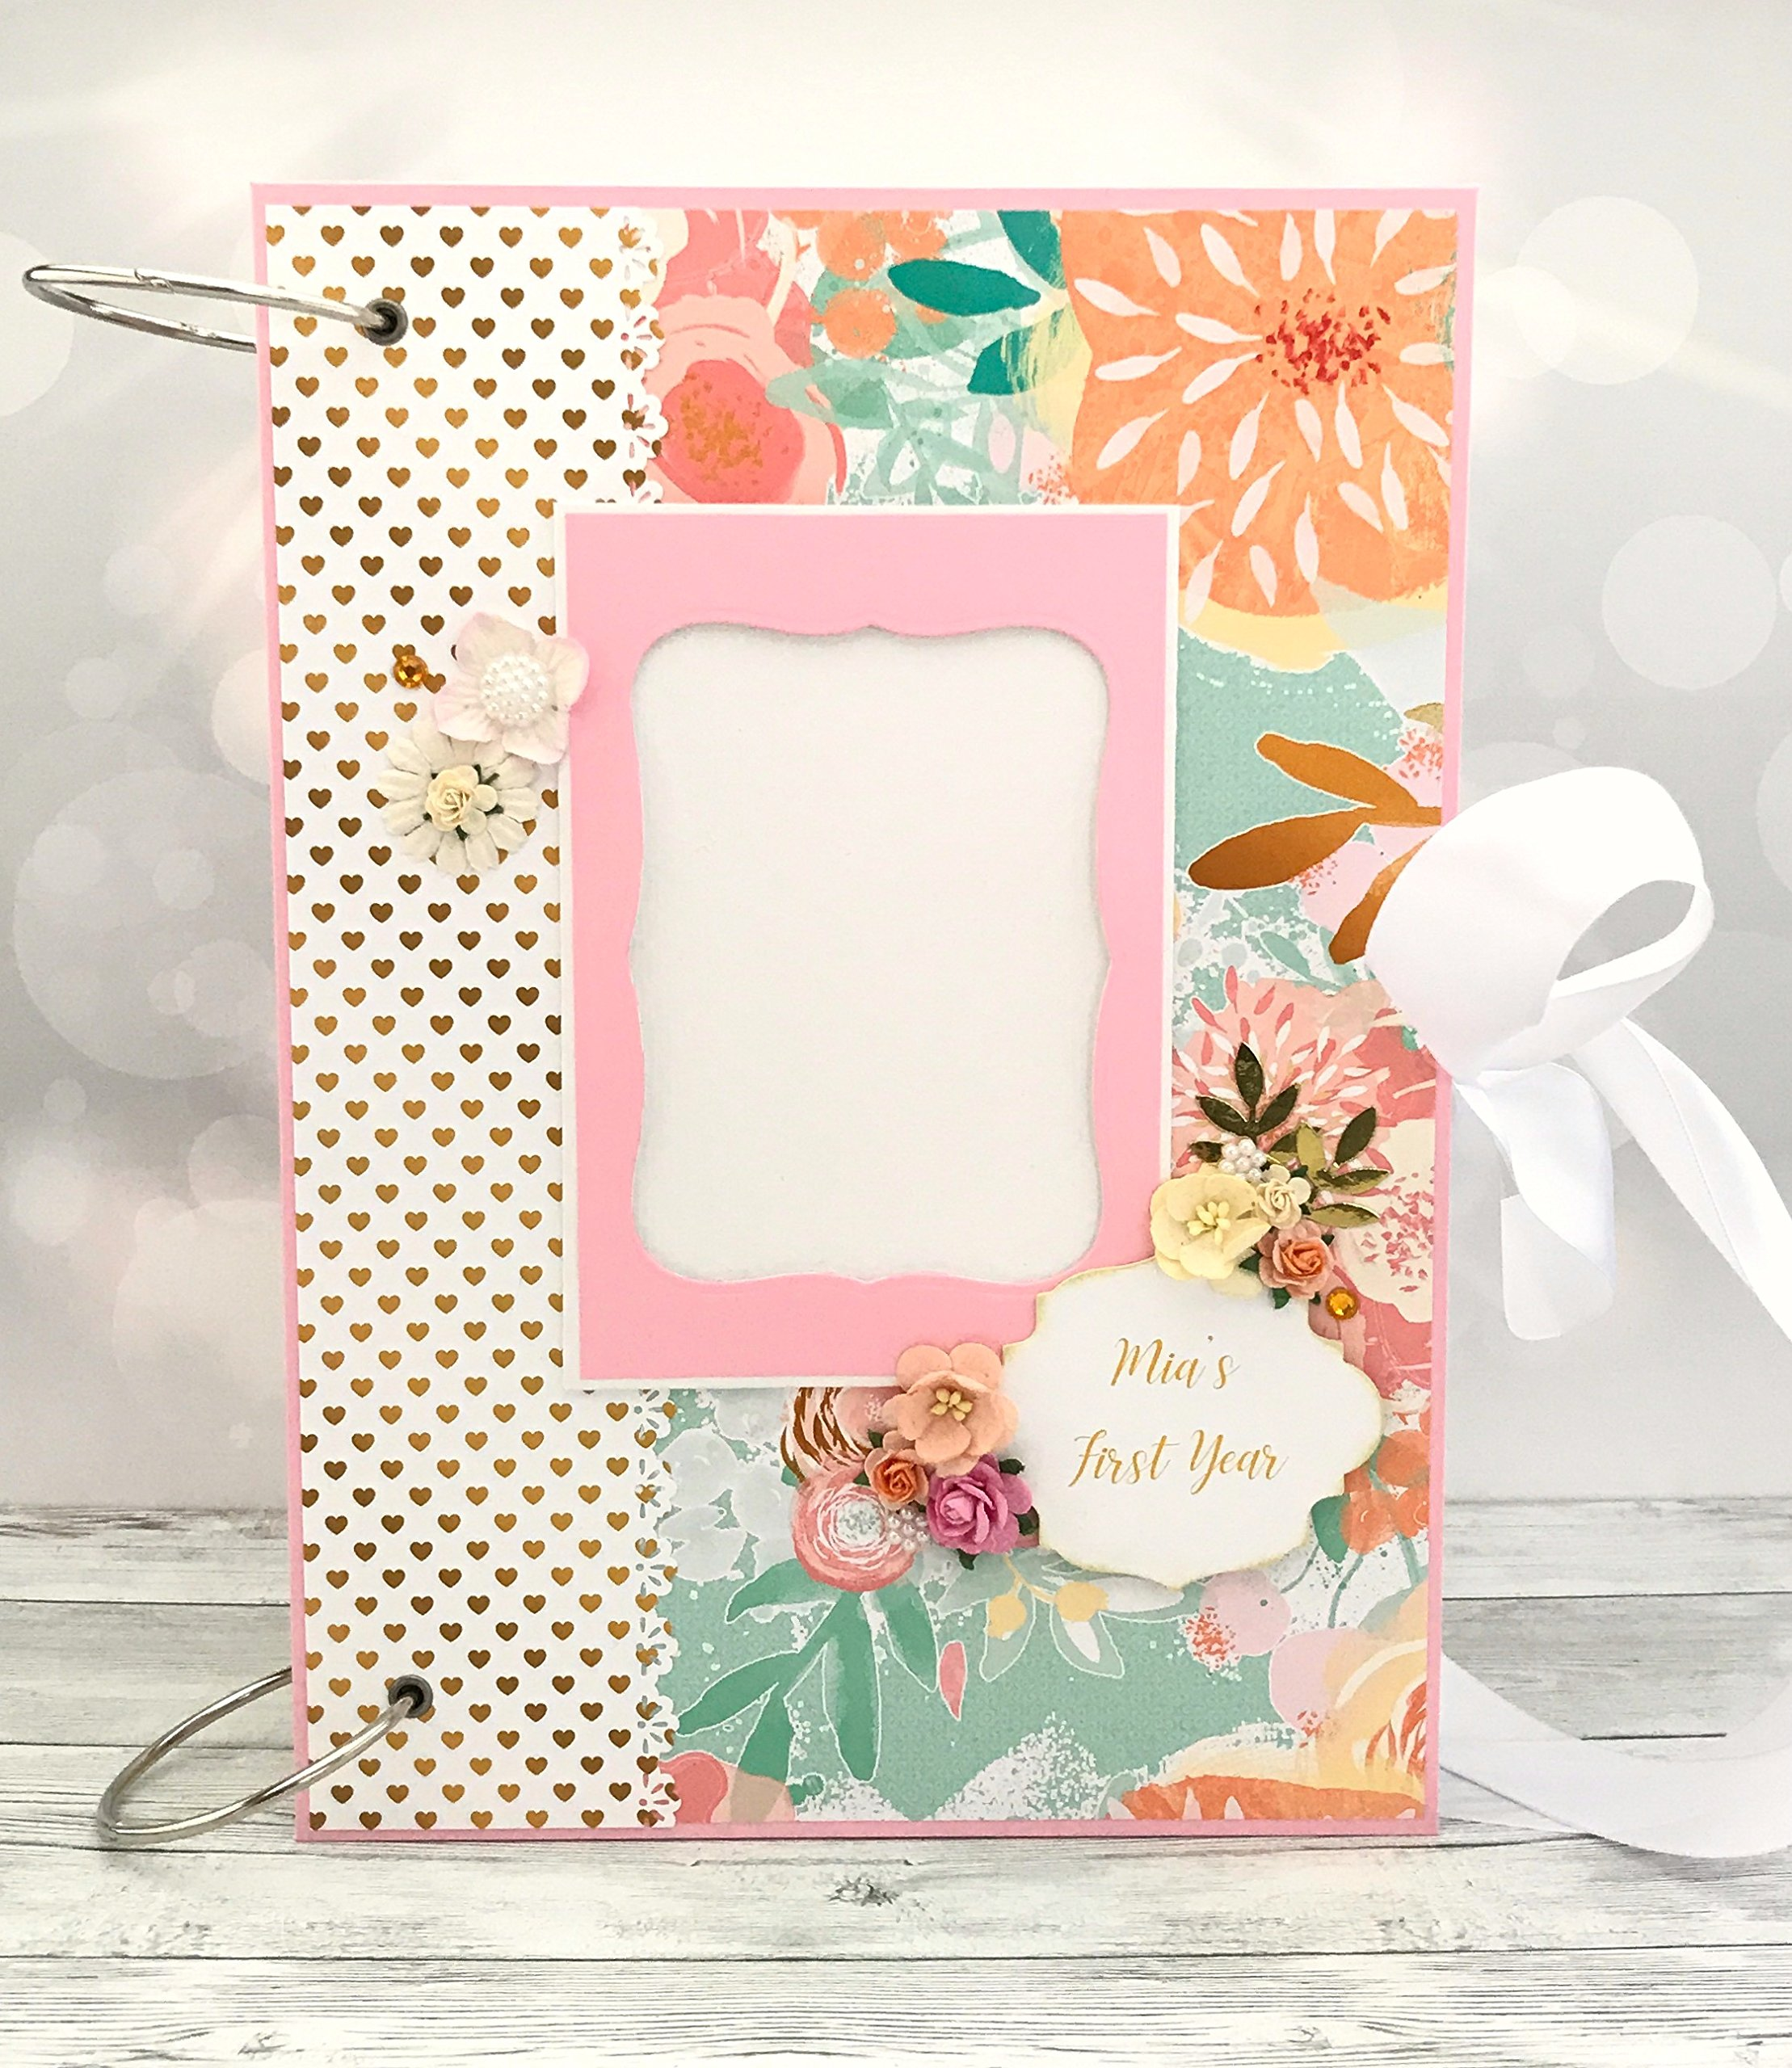 Kristabella Creations Baby girl peach and mint scrapbook album, size A4 8x11 inches, Metal ring binding, 20 decorated inside pages, Interactive, Month cards, Milestone card, Beautiful baby shower gift